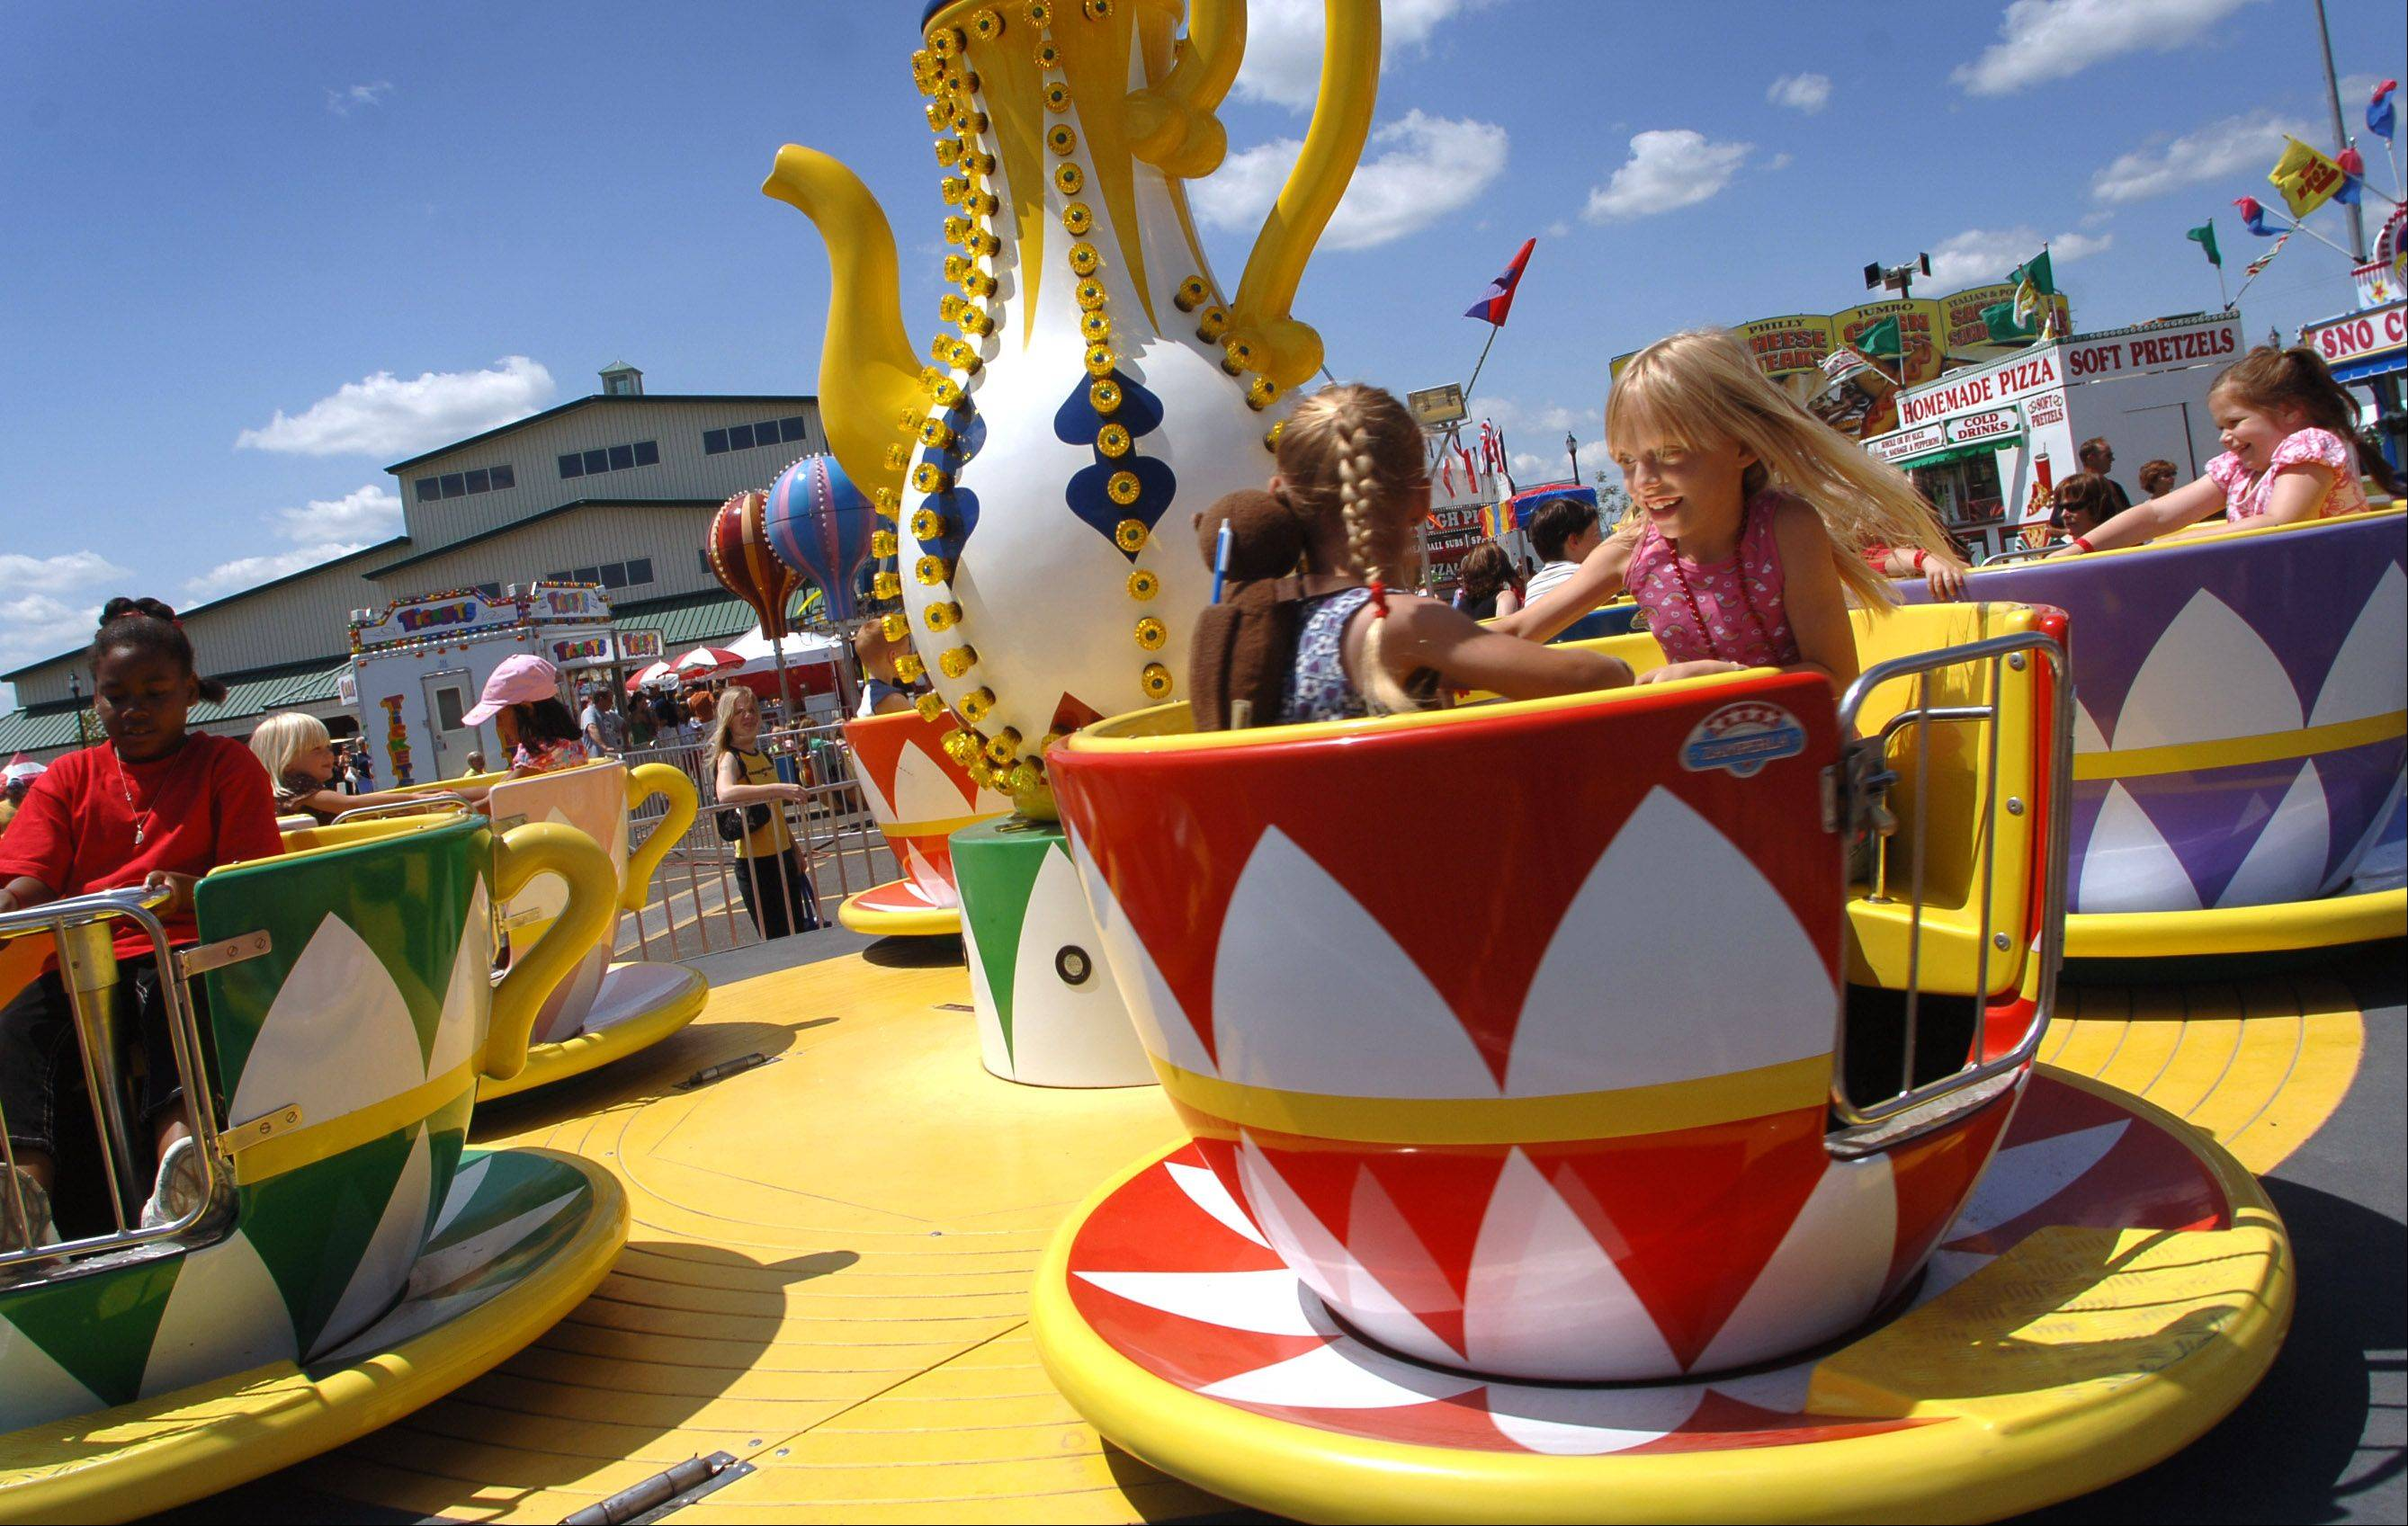 Kids enjoy the teacup ride at a previous year's Lake County Fair in Grayslake.